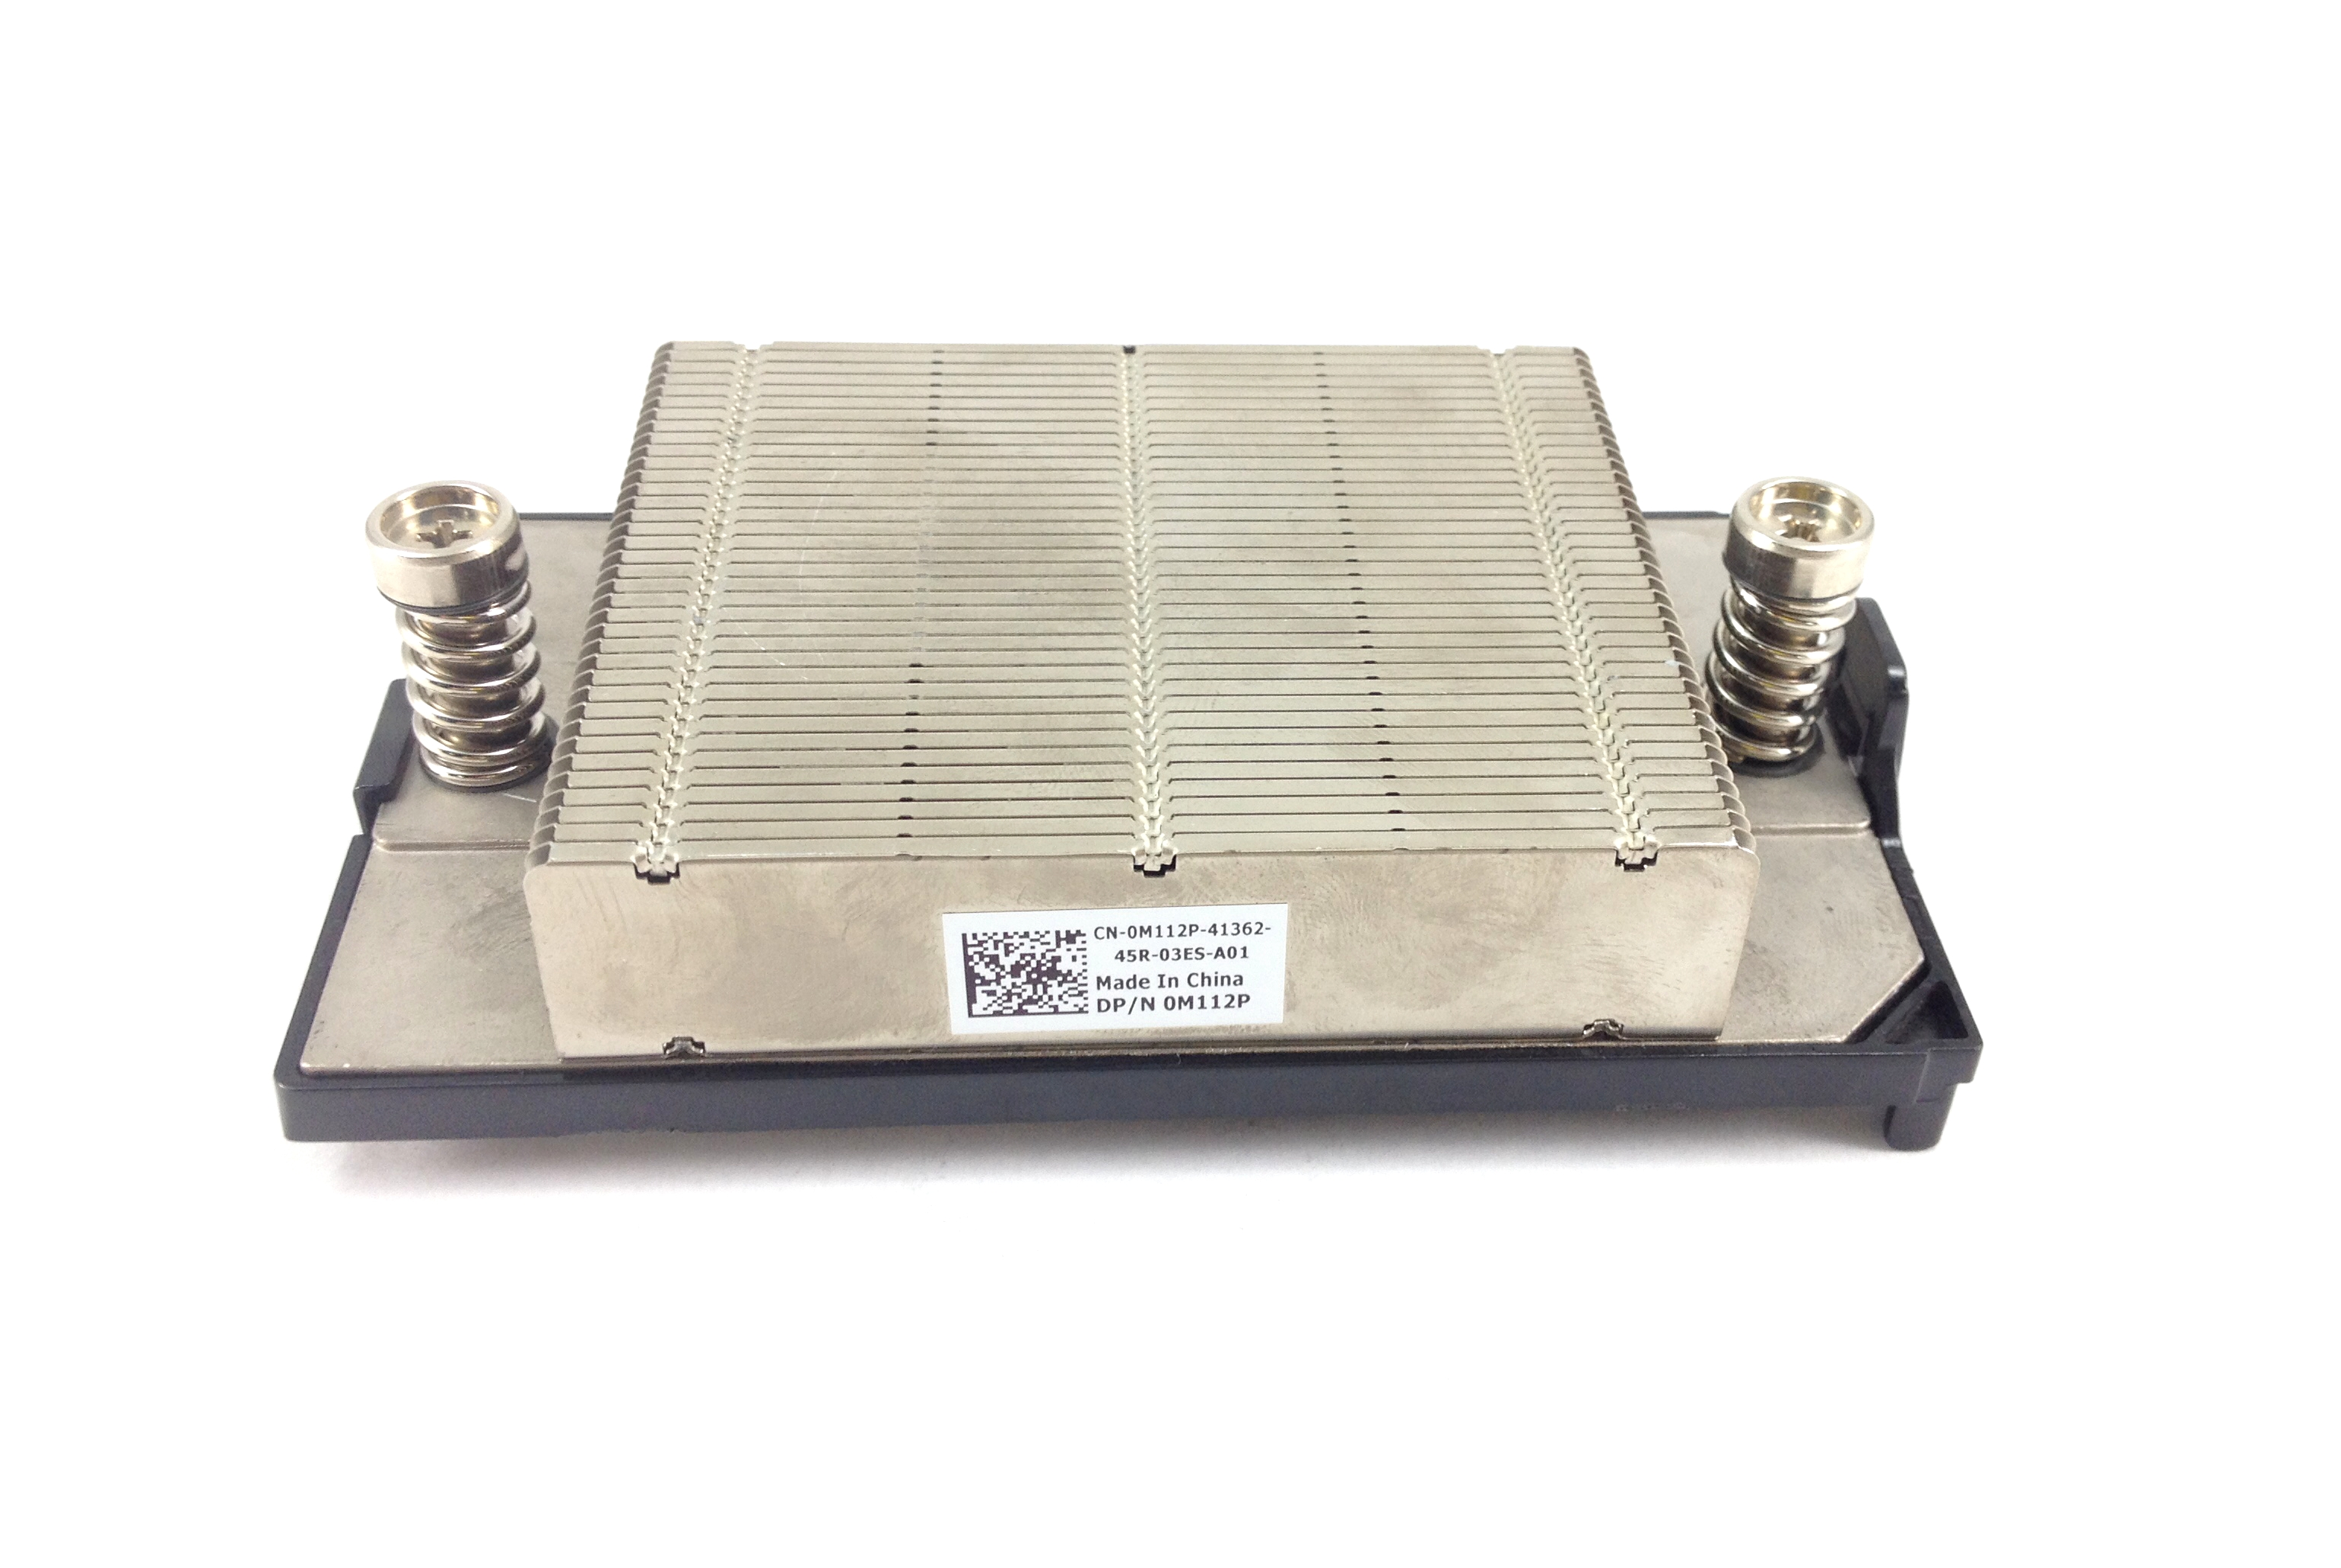 Dell PowerEdge R620 Server CPU Heatsink (M112P)